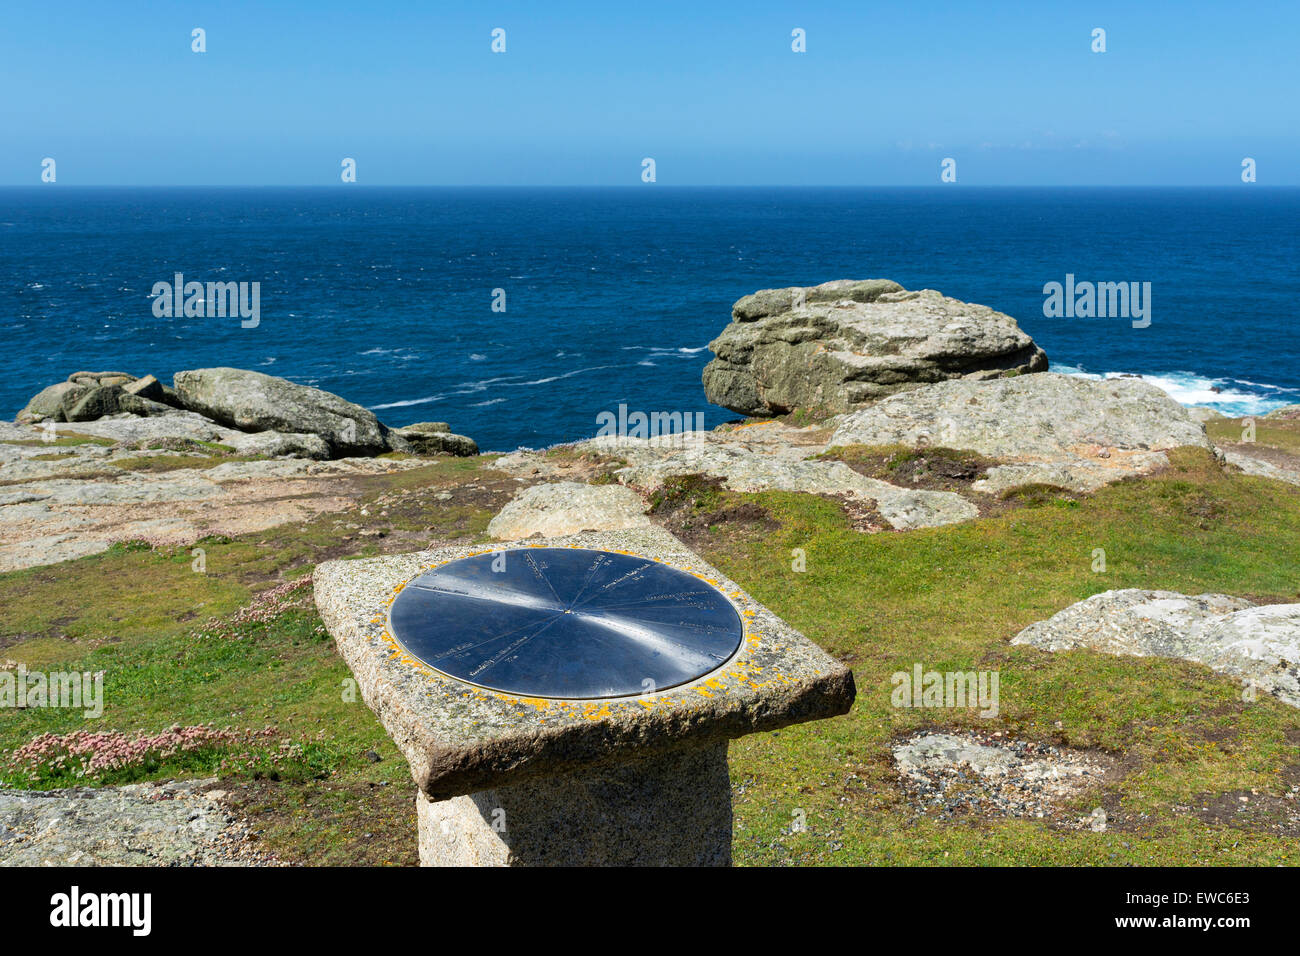 The Trig Point at Gwennap Head near Lands End in Cornwall, England, UK - Stock Image